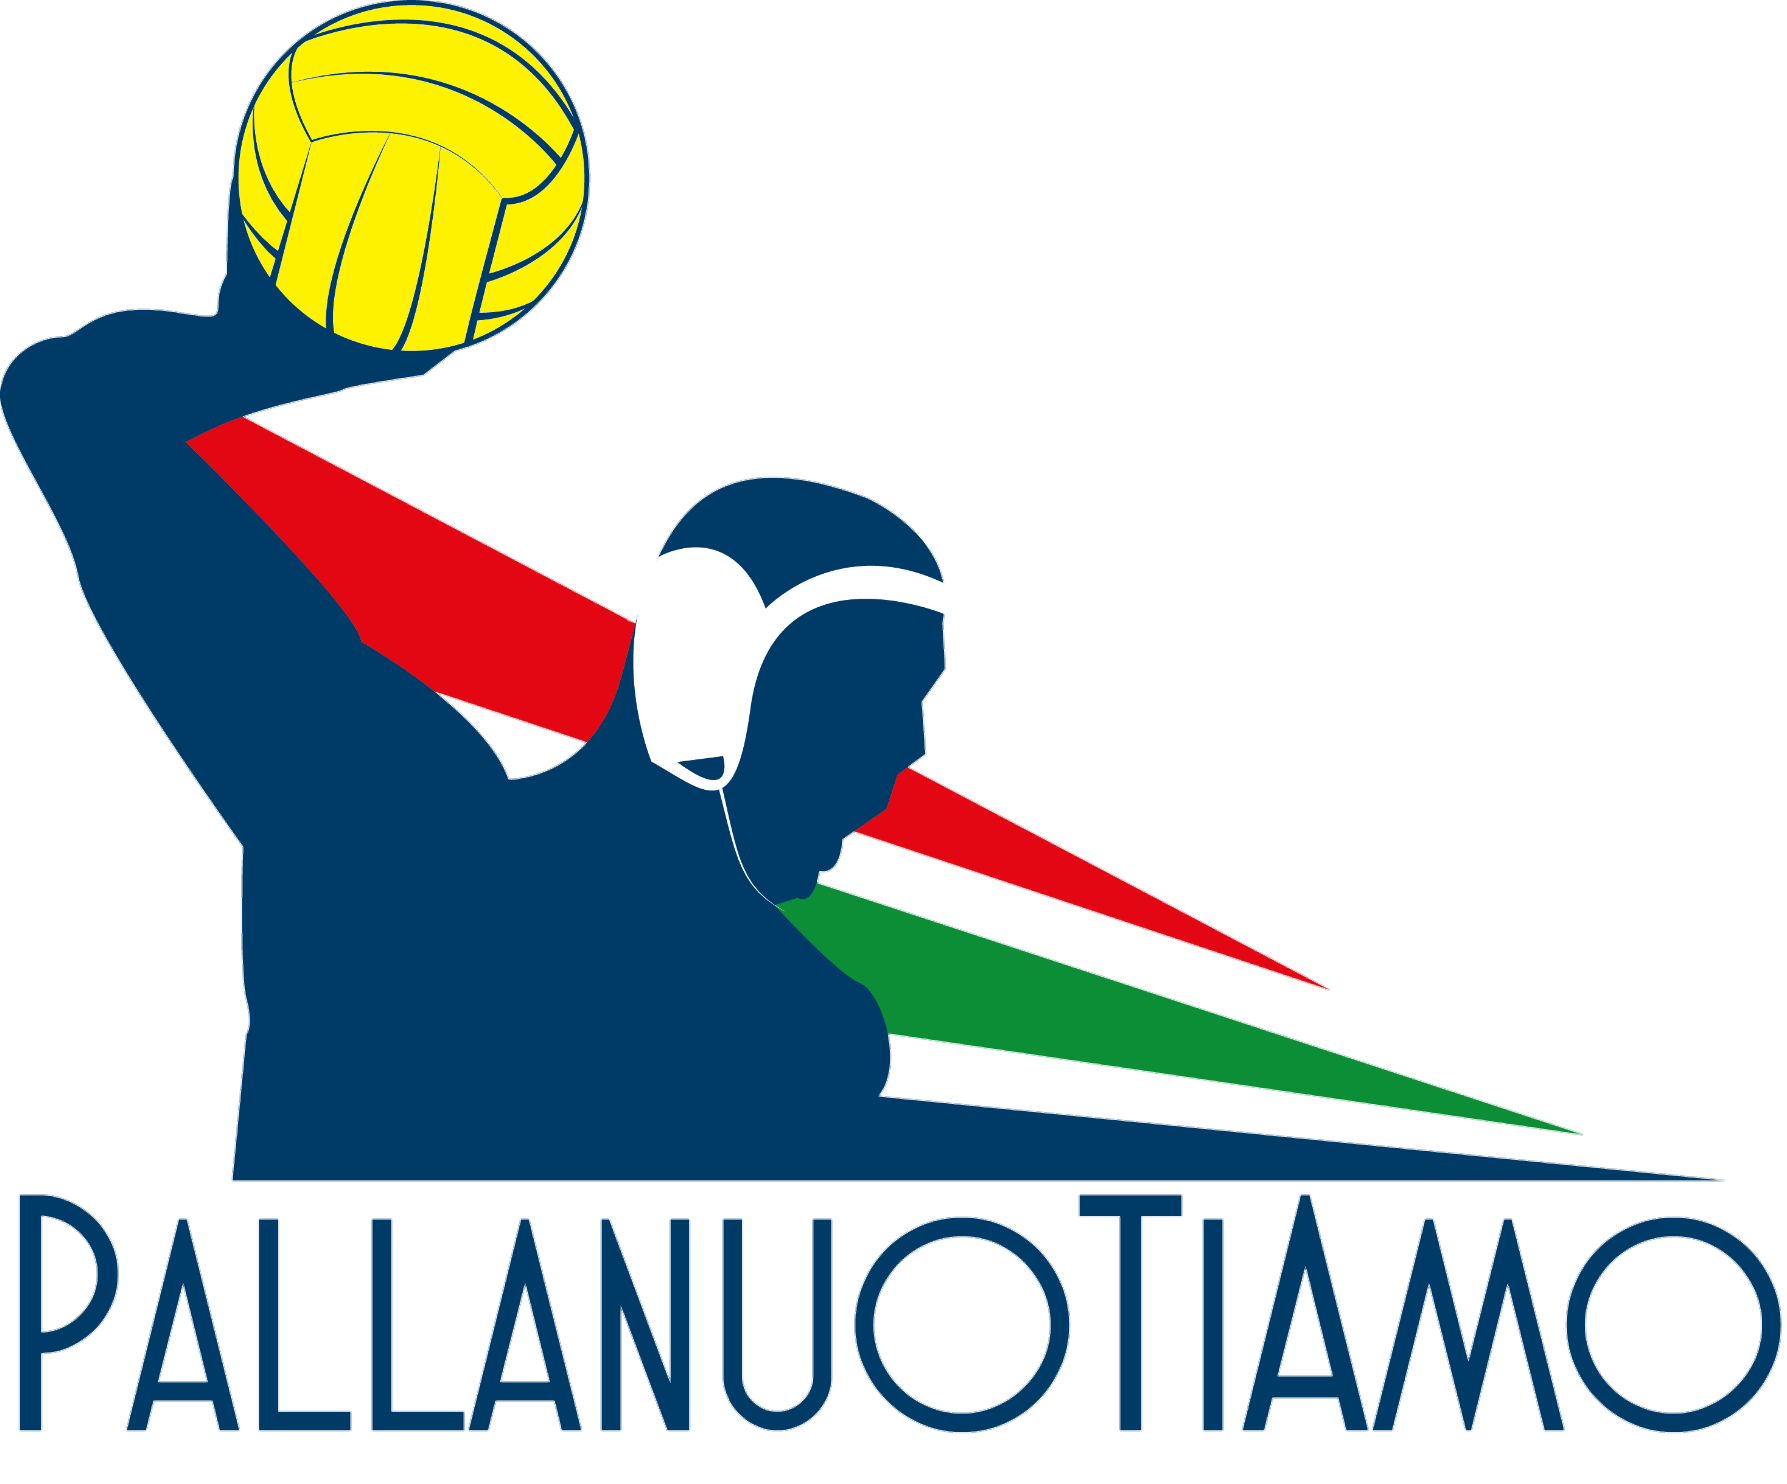 PallanuoTiamo 2019-2020 | The New Season is coming soon